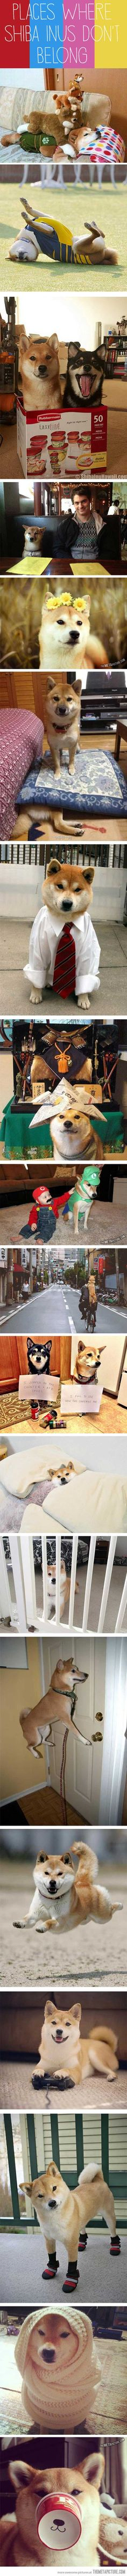 Places Shiba Inus don't belong :3 … I would hope they weren't in each situation for too long~ ^^""""""""